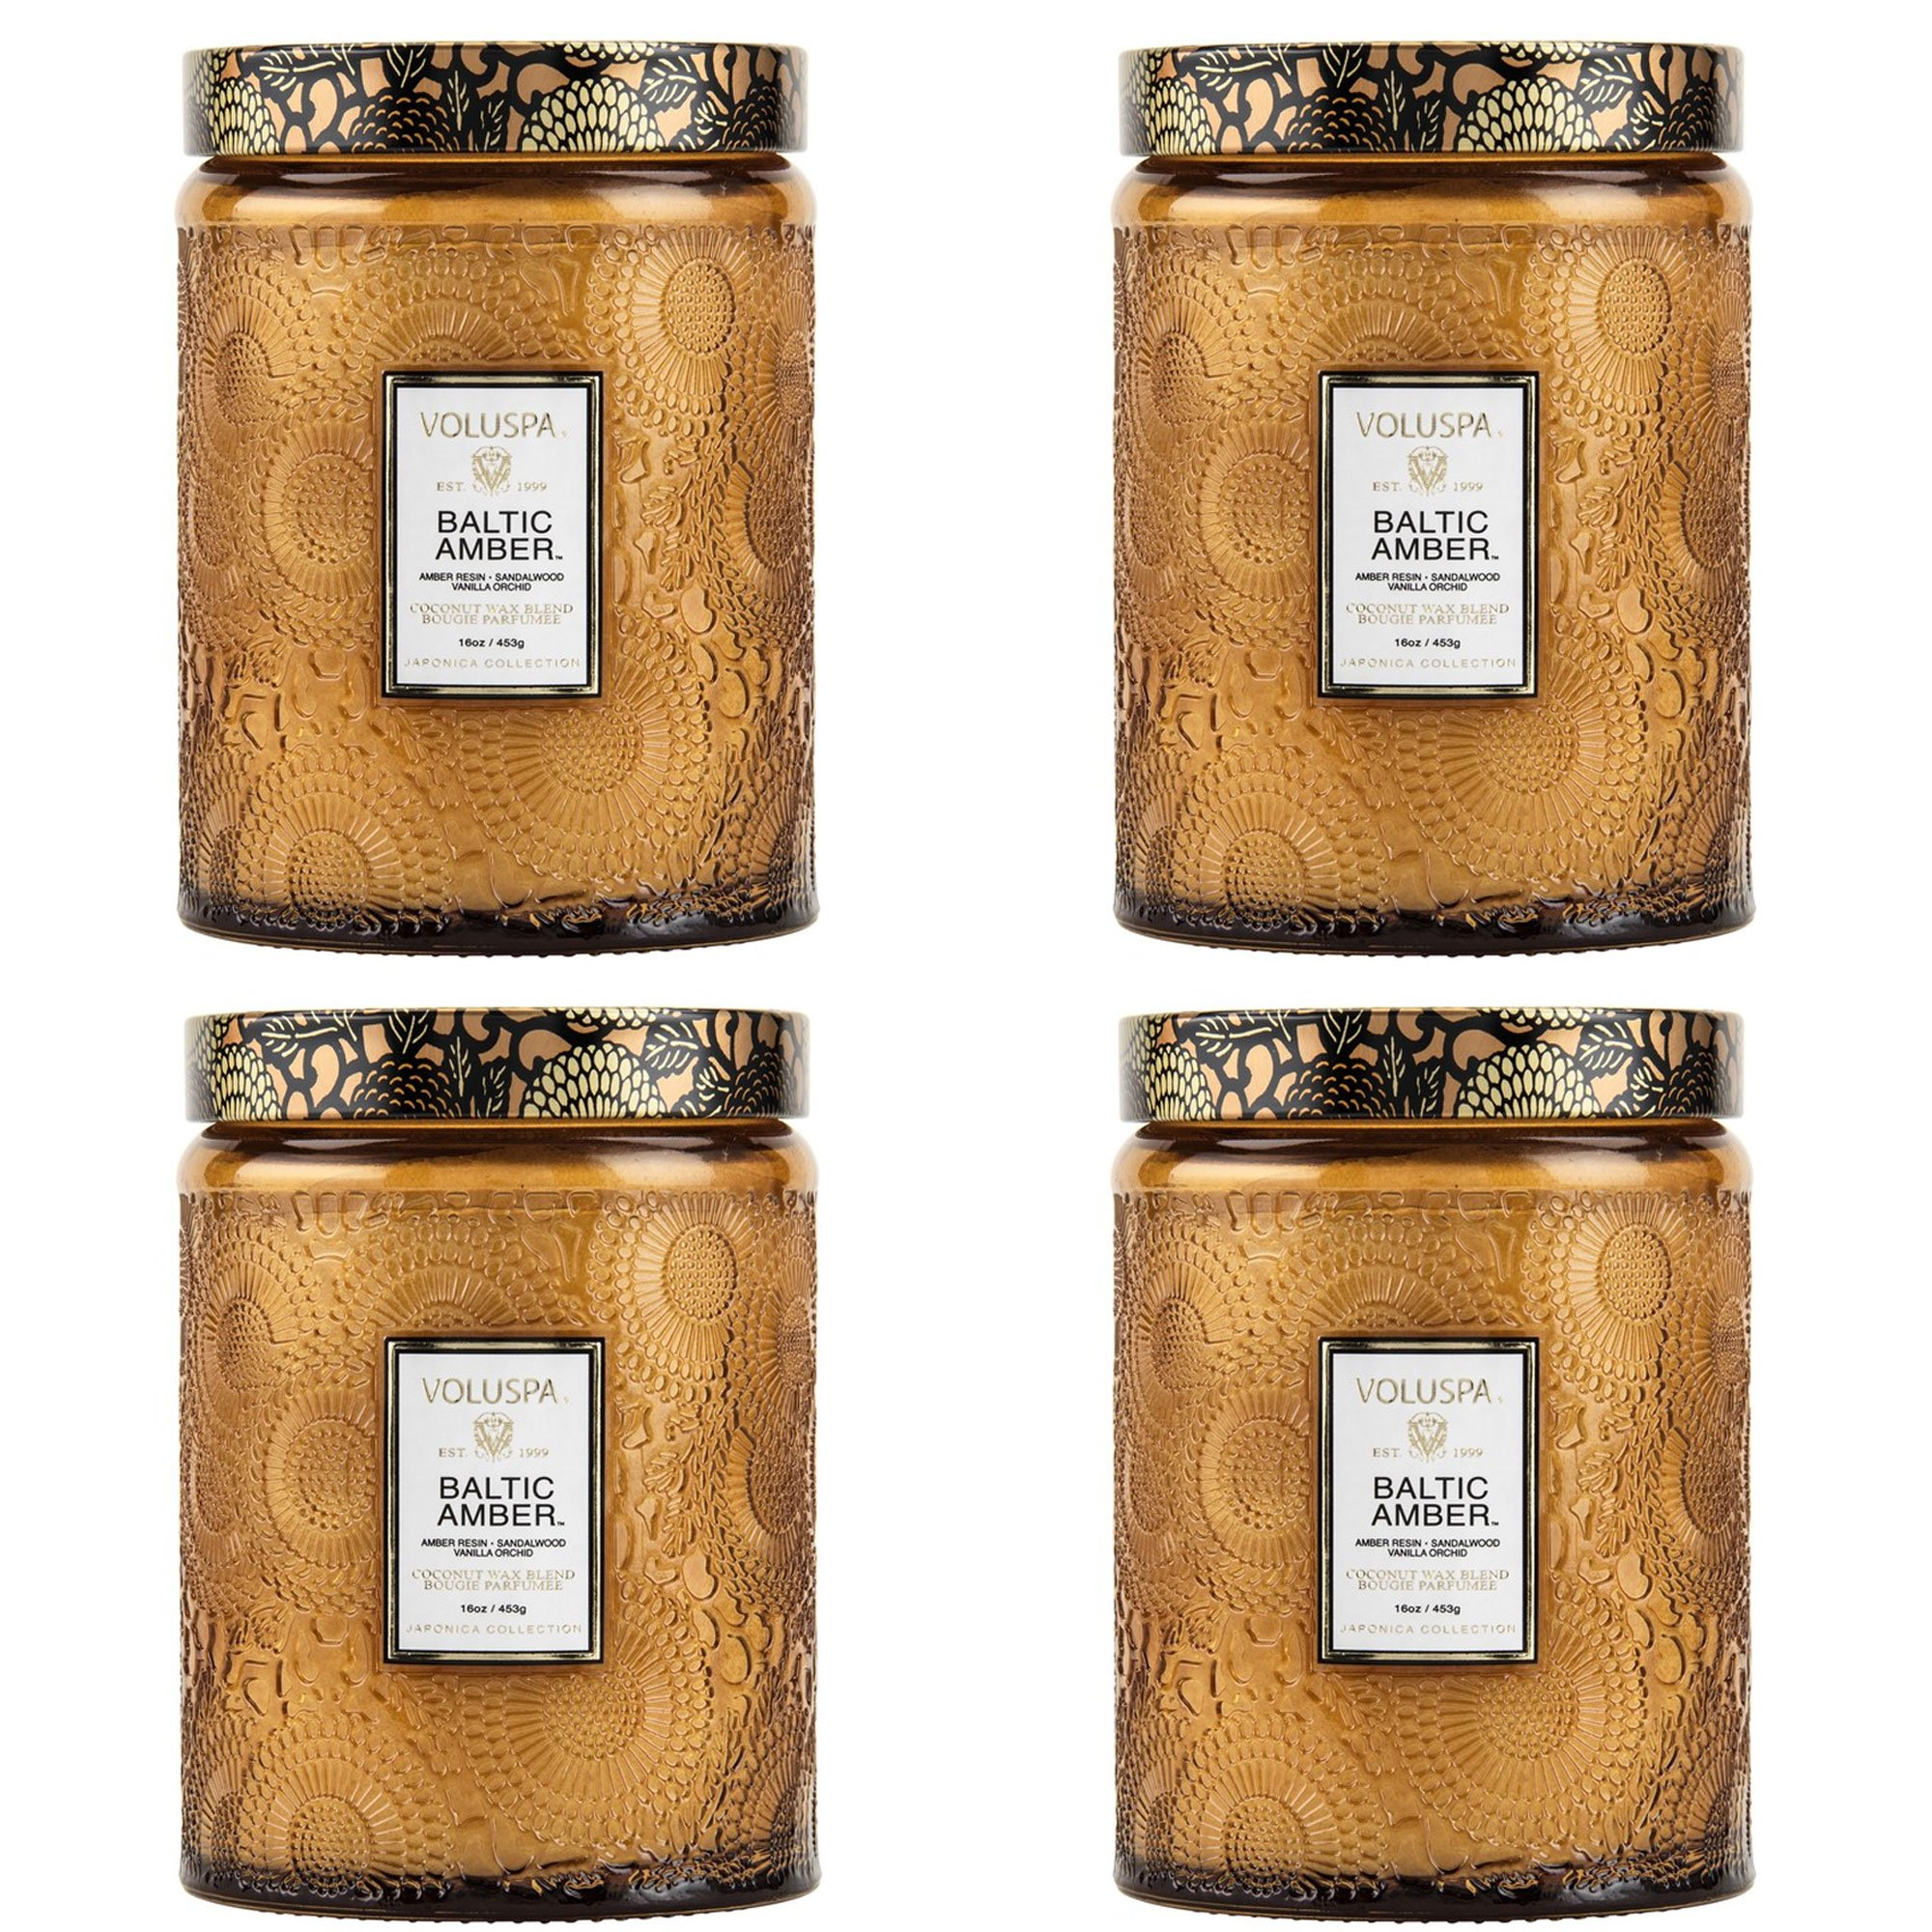 Voluspa Baltic Amber Large Embossed Glass Jar Candle ( 4 pack ) by Voluspa